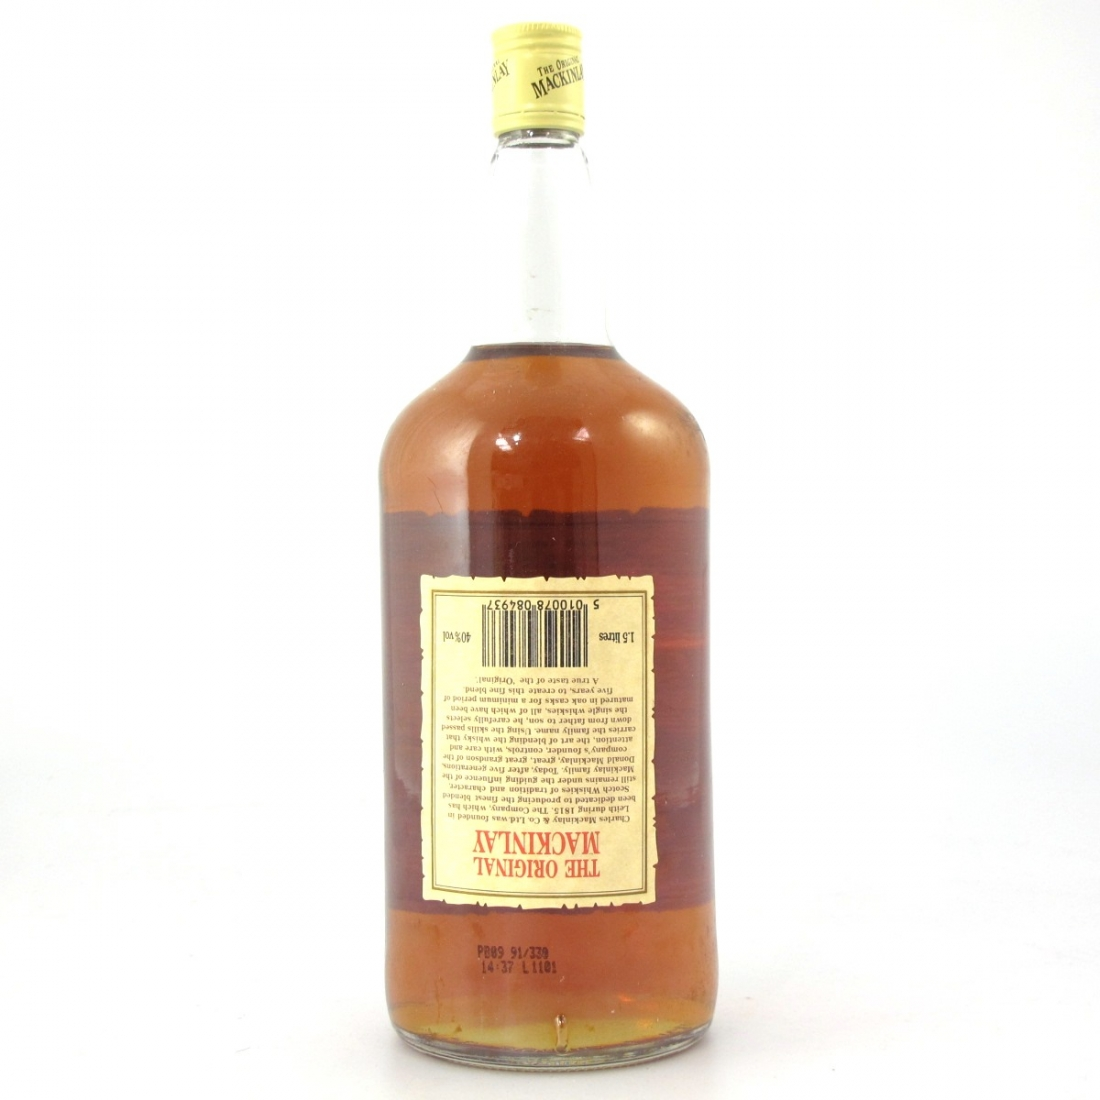 Mackinlay Finest Old Scotch Whisky 1.5 Litre